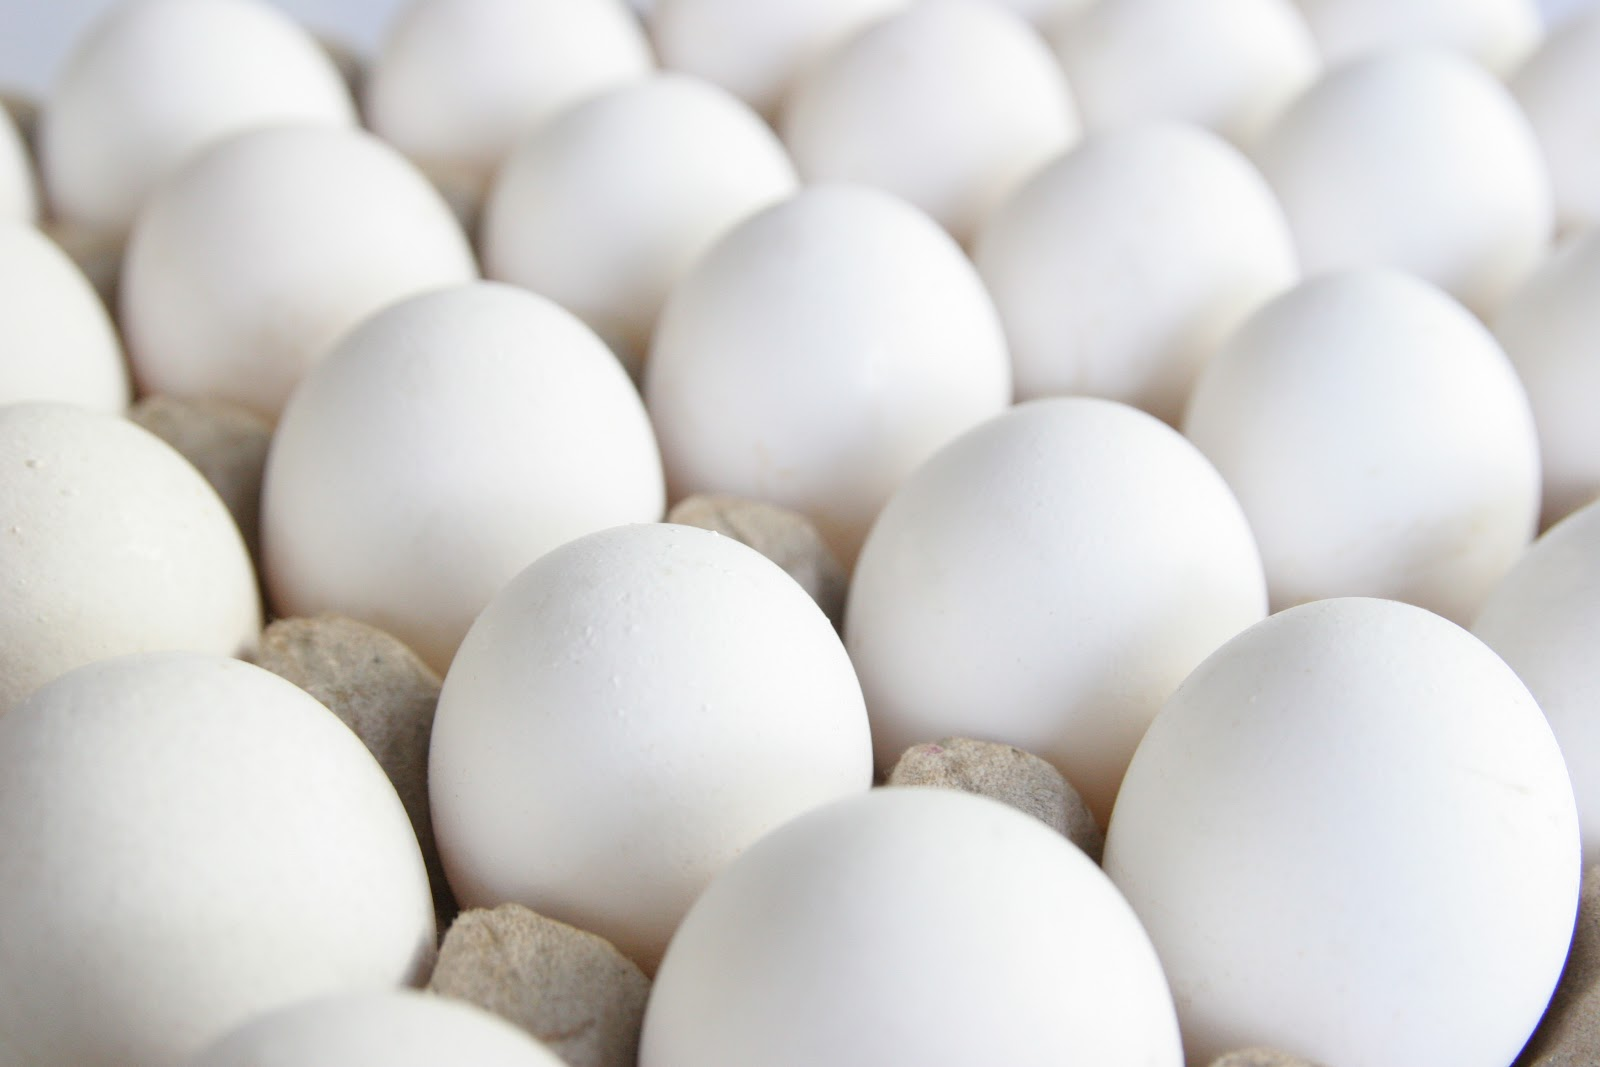 how to tell if fresh eggs are good or bad